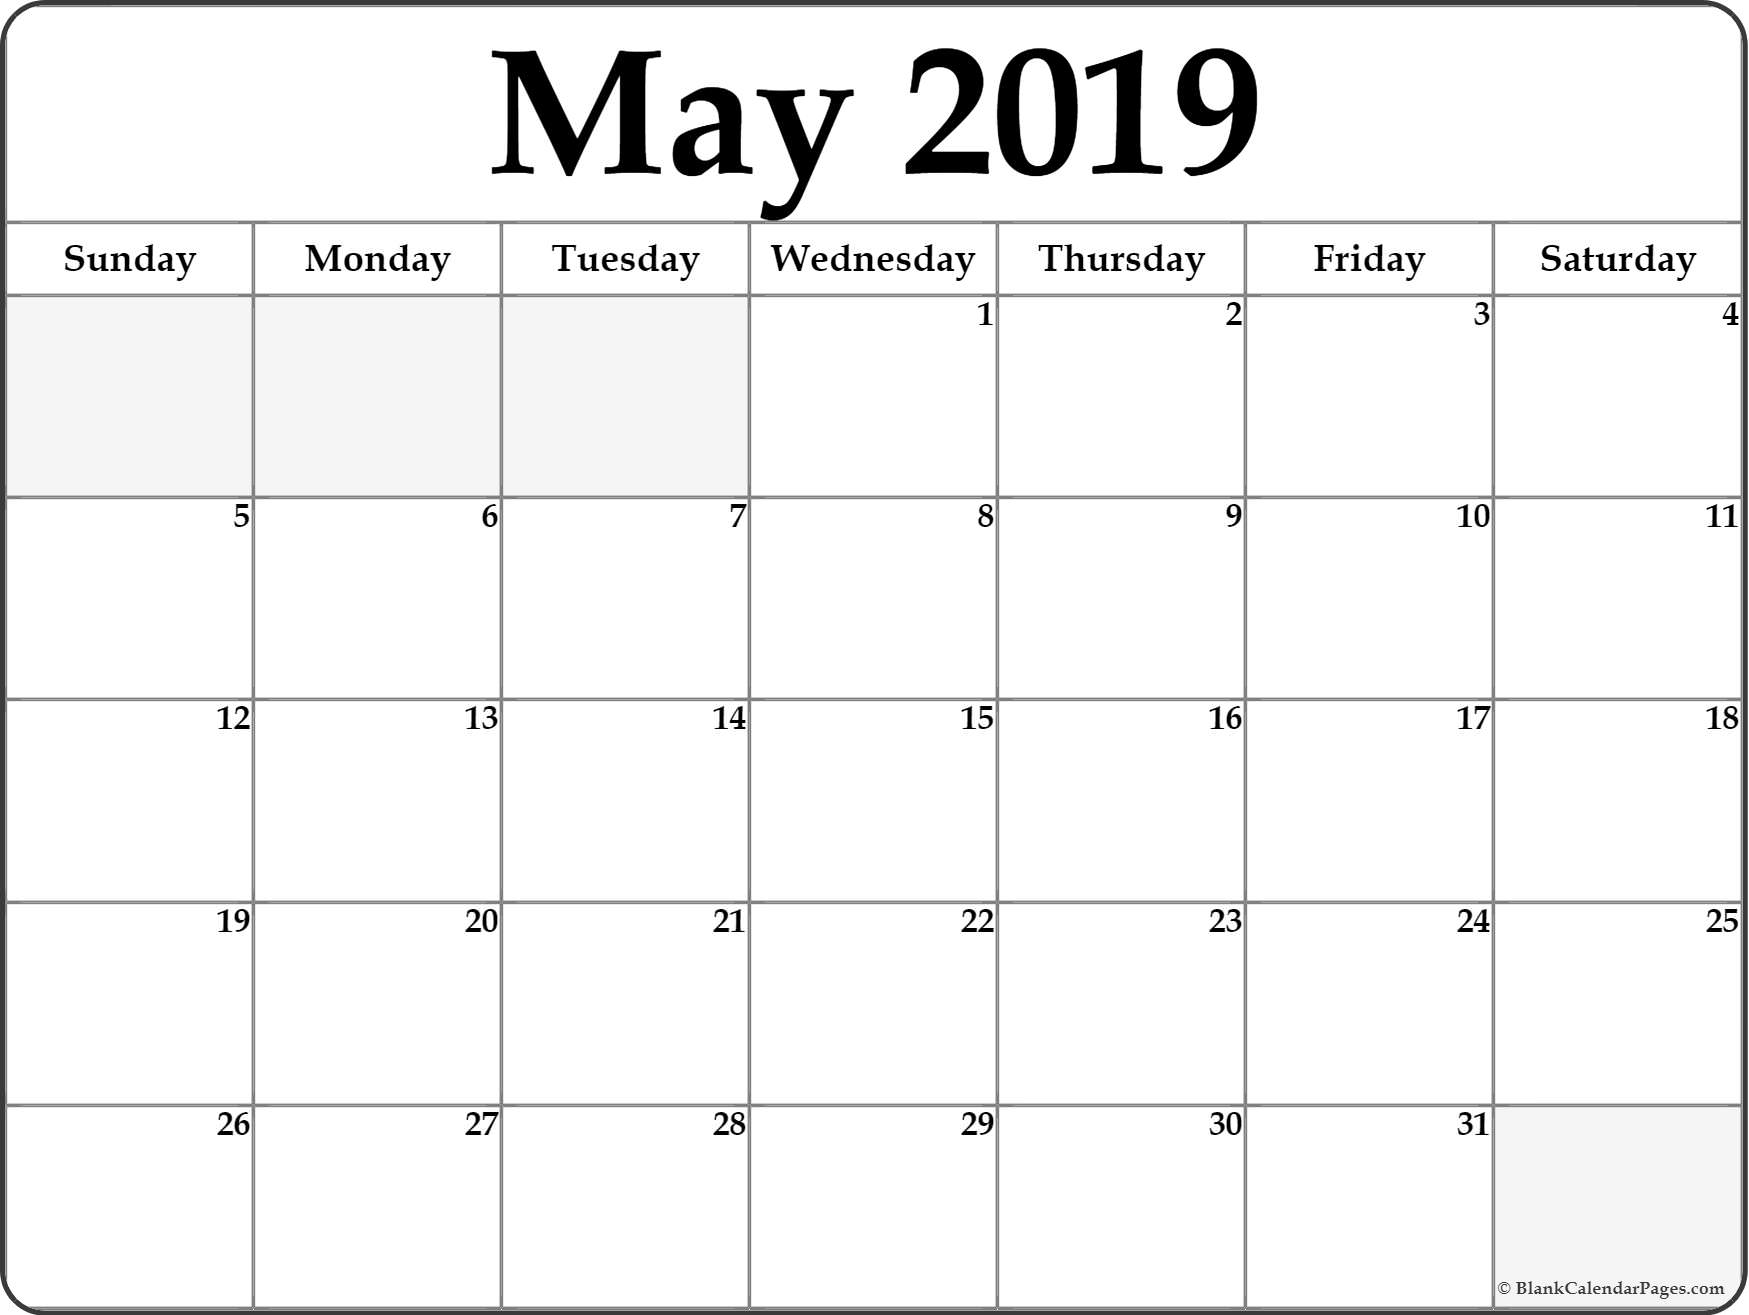 Calendar for May 2019